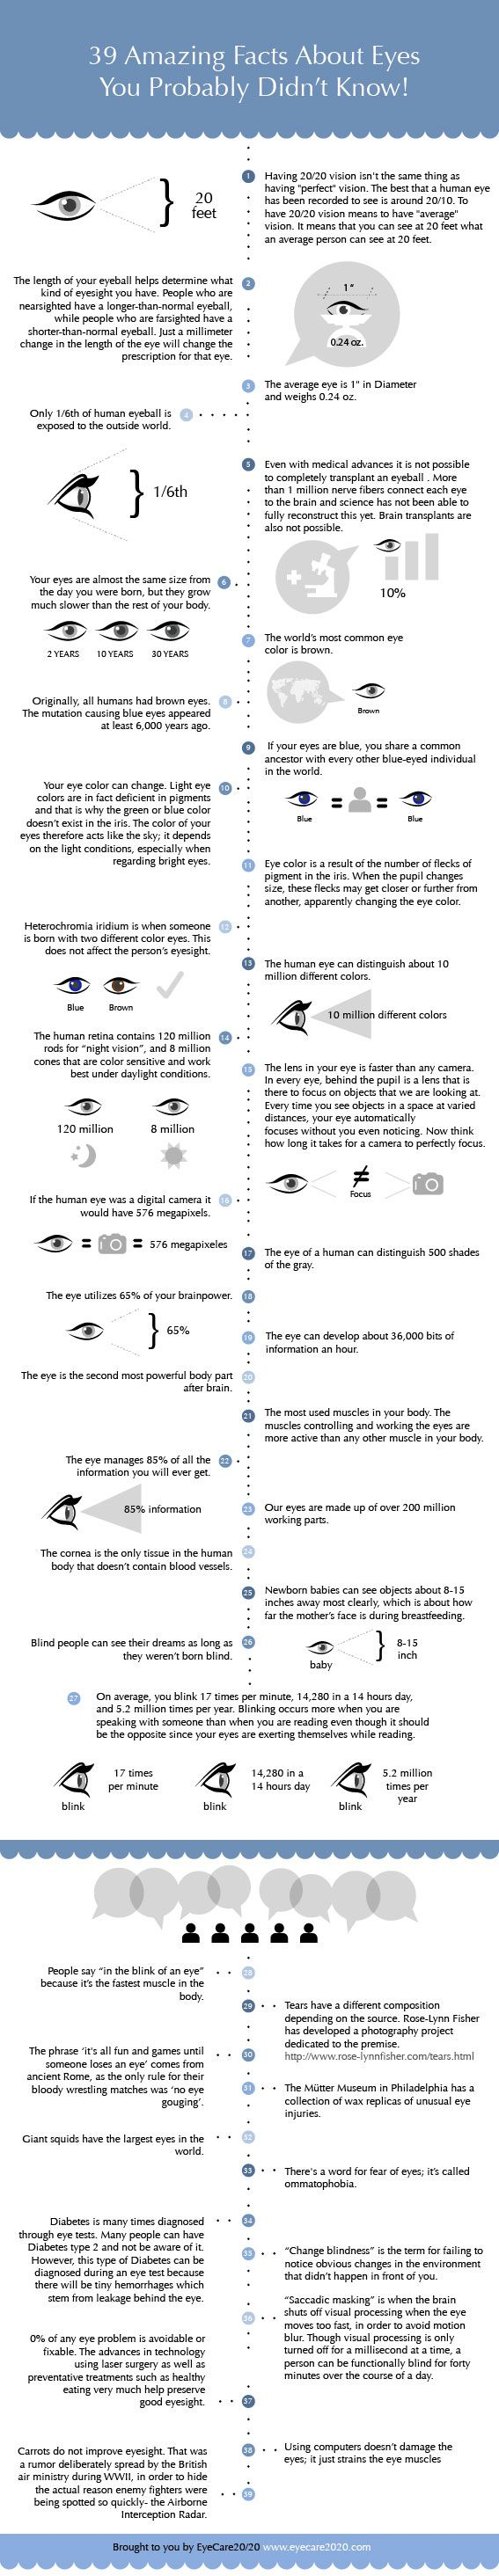 Fun facts about your eyes we bet you didn't know!